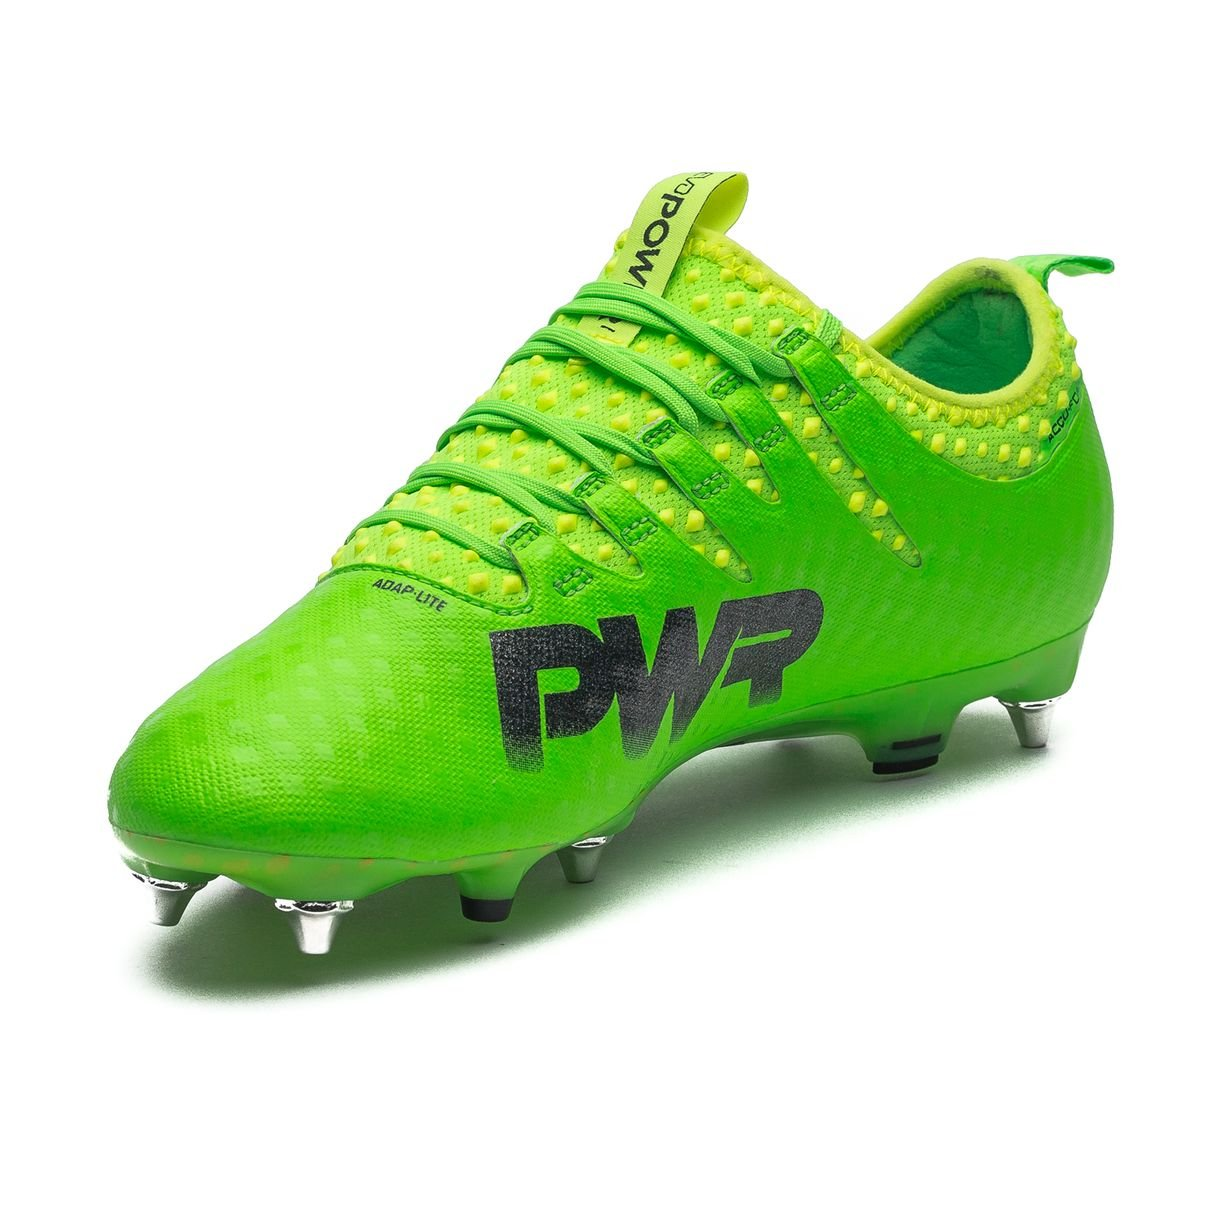 puma evopower mx